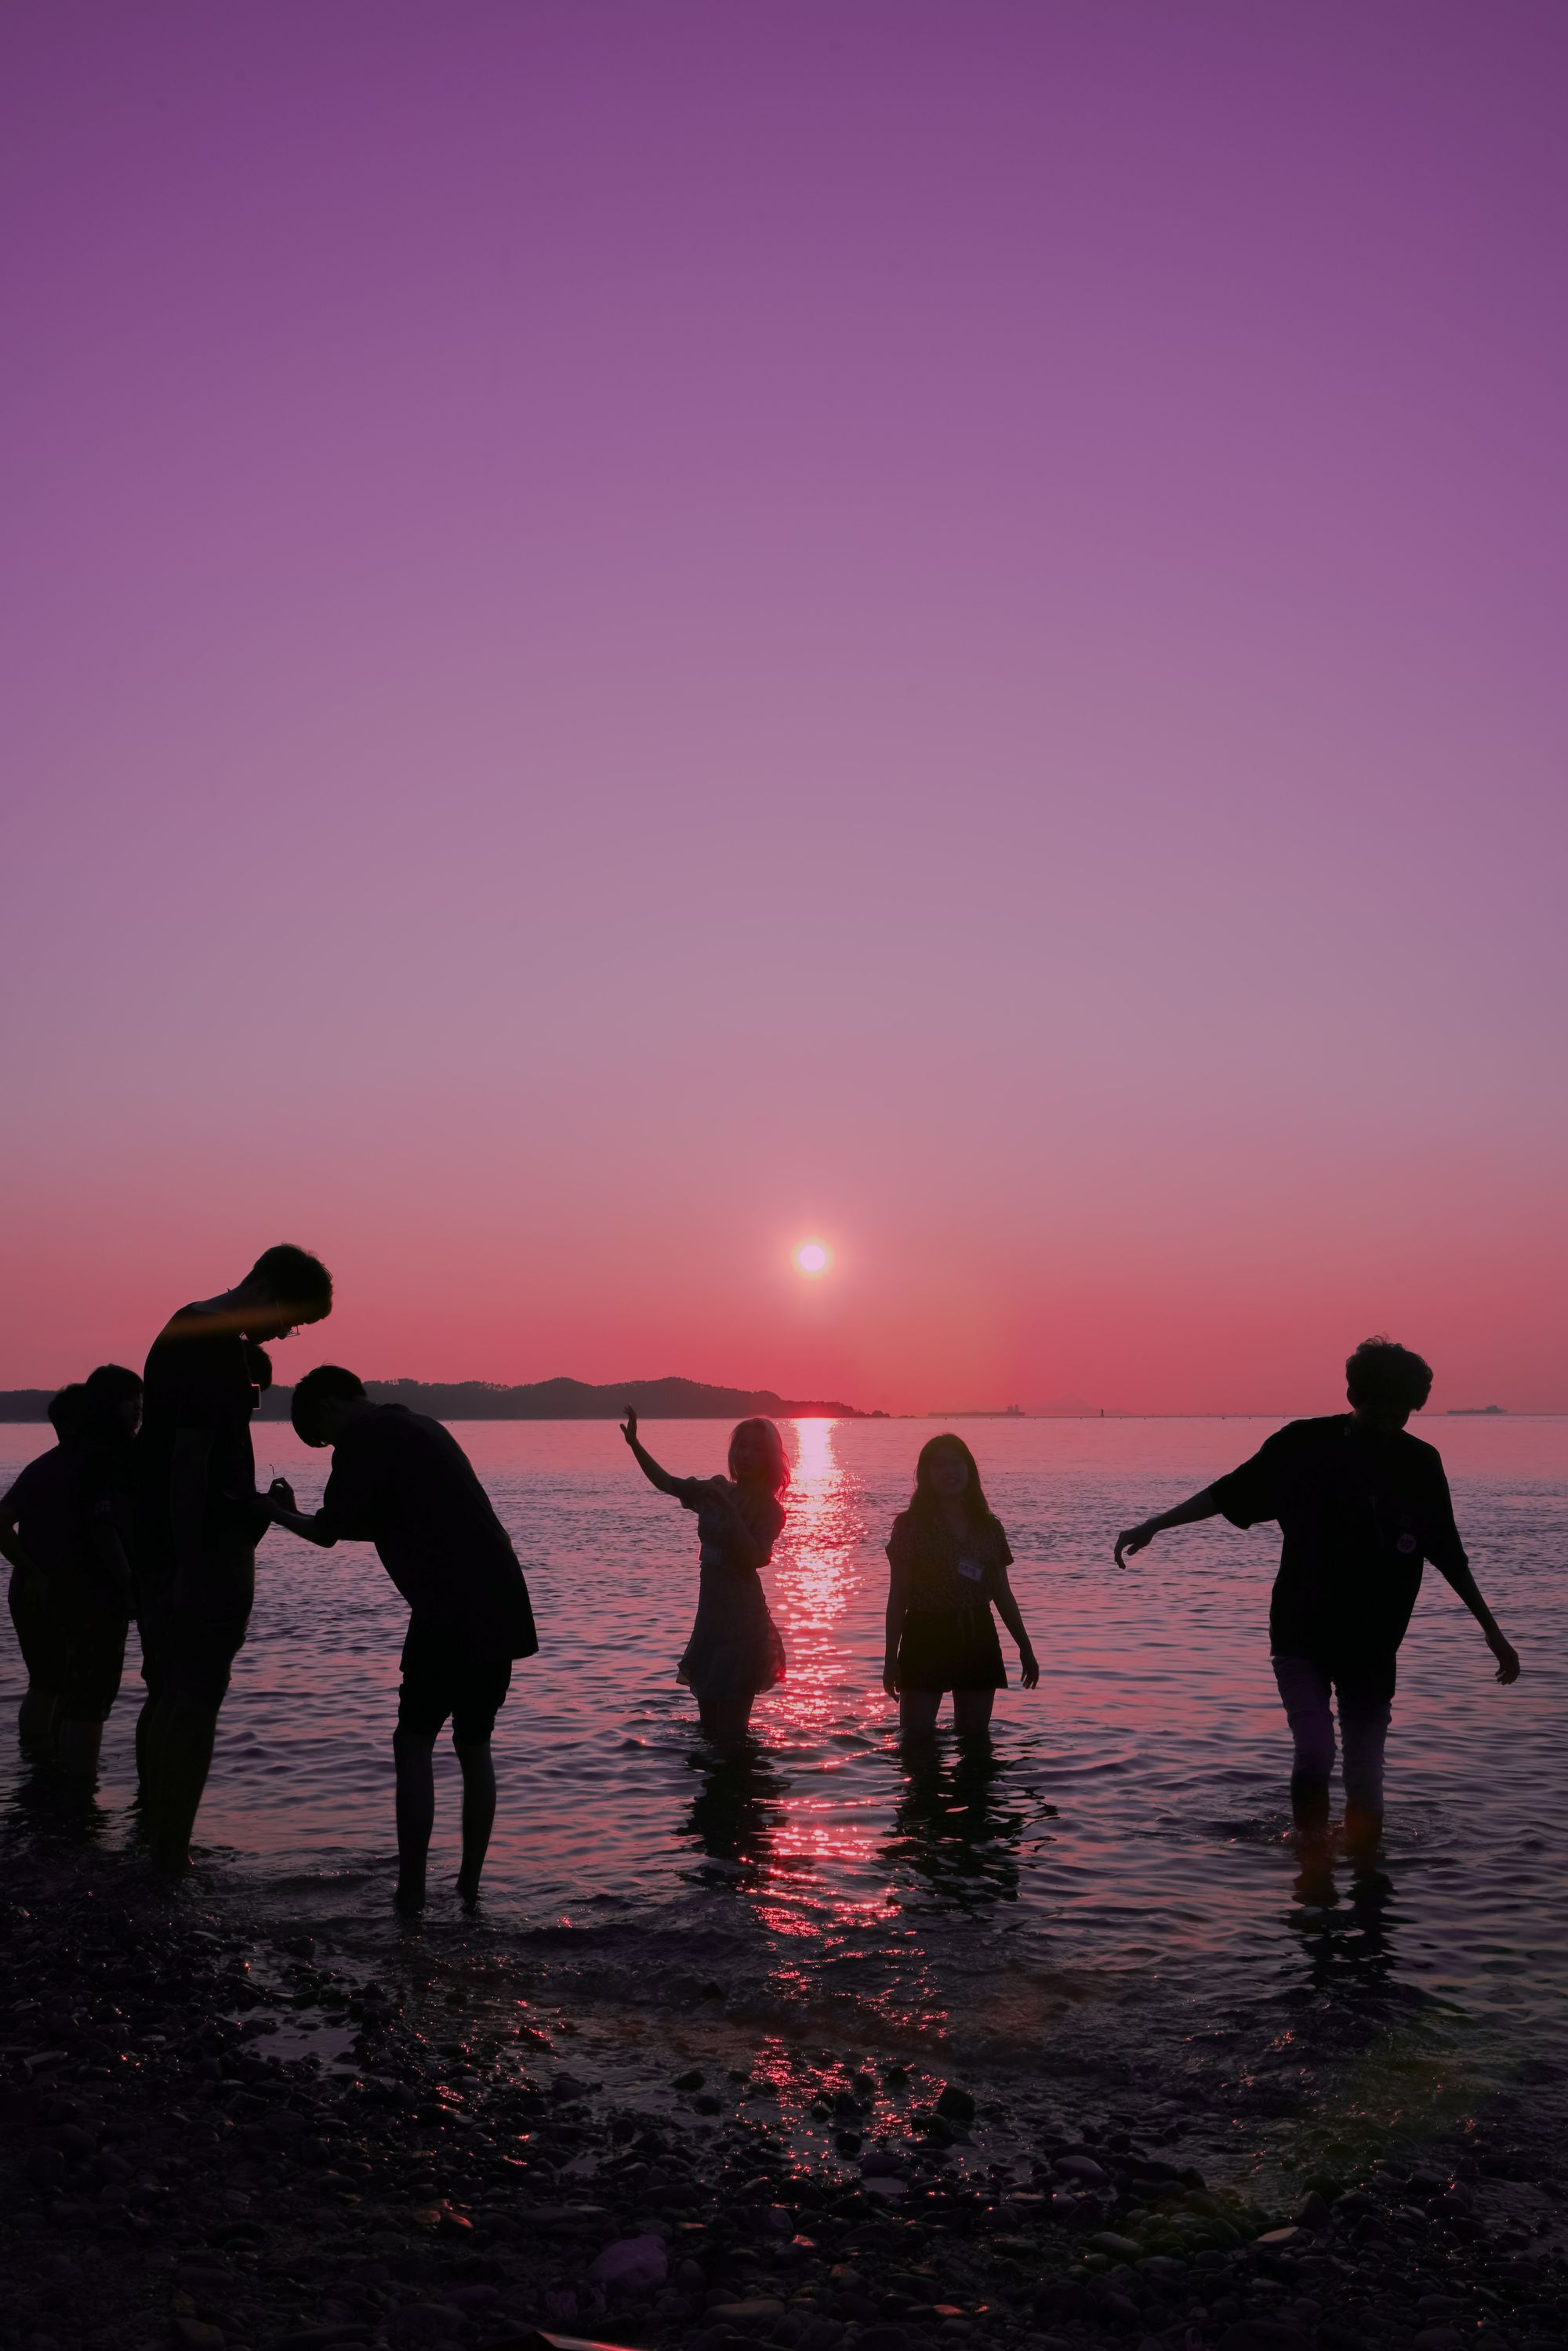 beach with friends, free photo, free image, free picture, 바다, 해변, 우정